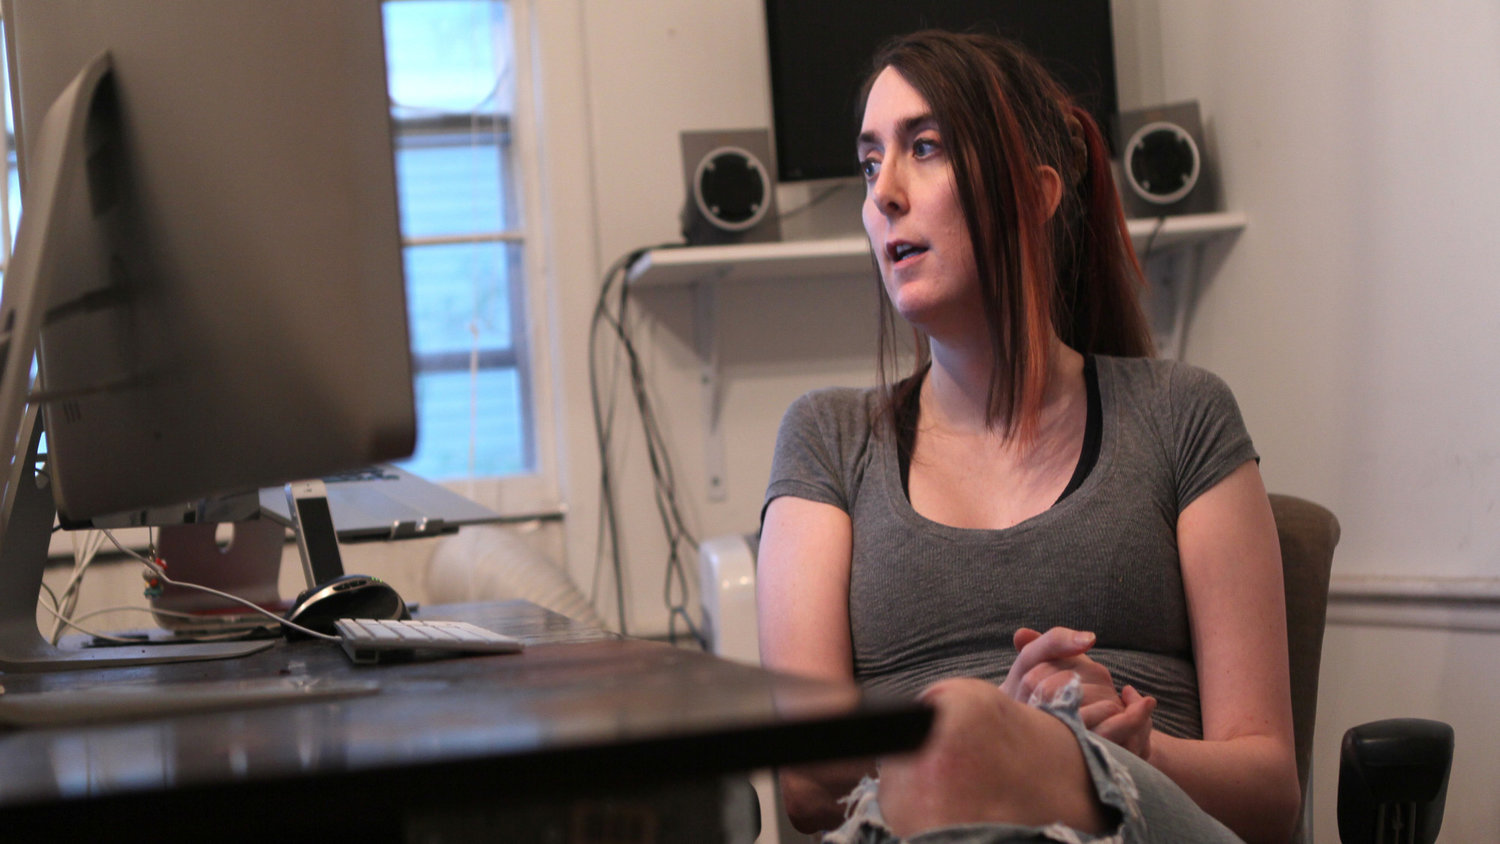 ARLINGTON, MA - OCTOBER 21: Brianna Wu, software engineer and the found of Giant Spacekat, which makes games with female protagonists. Wu is one of three woman targeted for abuse and death threats by the gaming community after posting online about the misogony in the gaming industry. (Photo by Joanne Rathe/The Boston Globe via Getty Images)